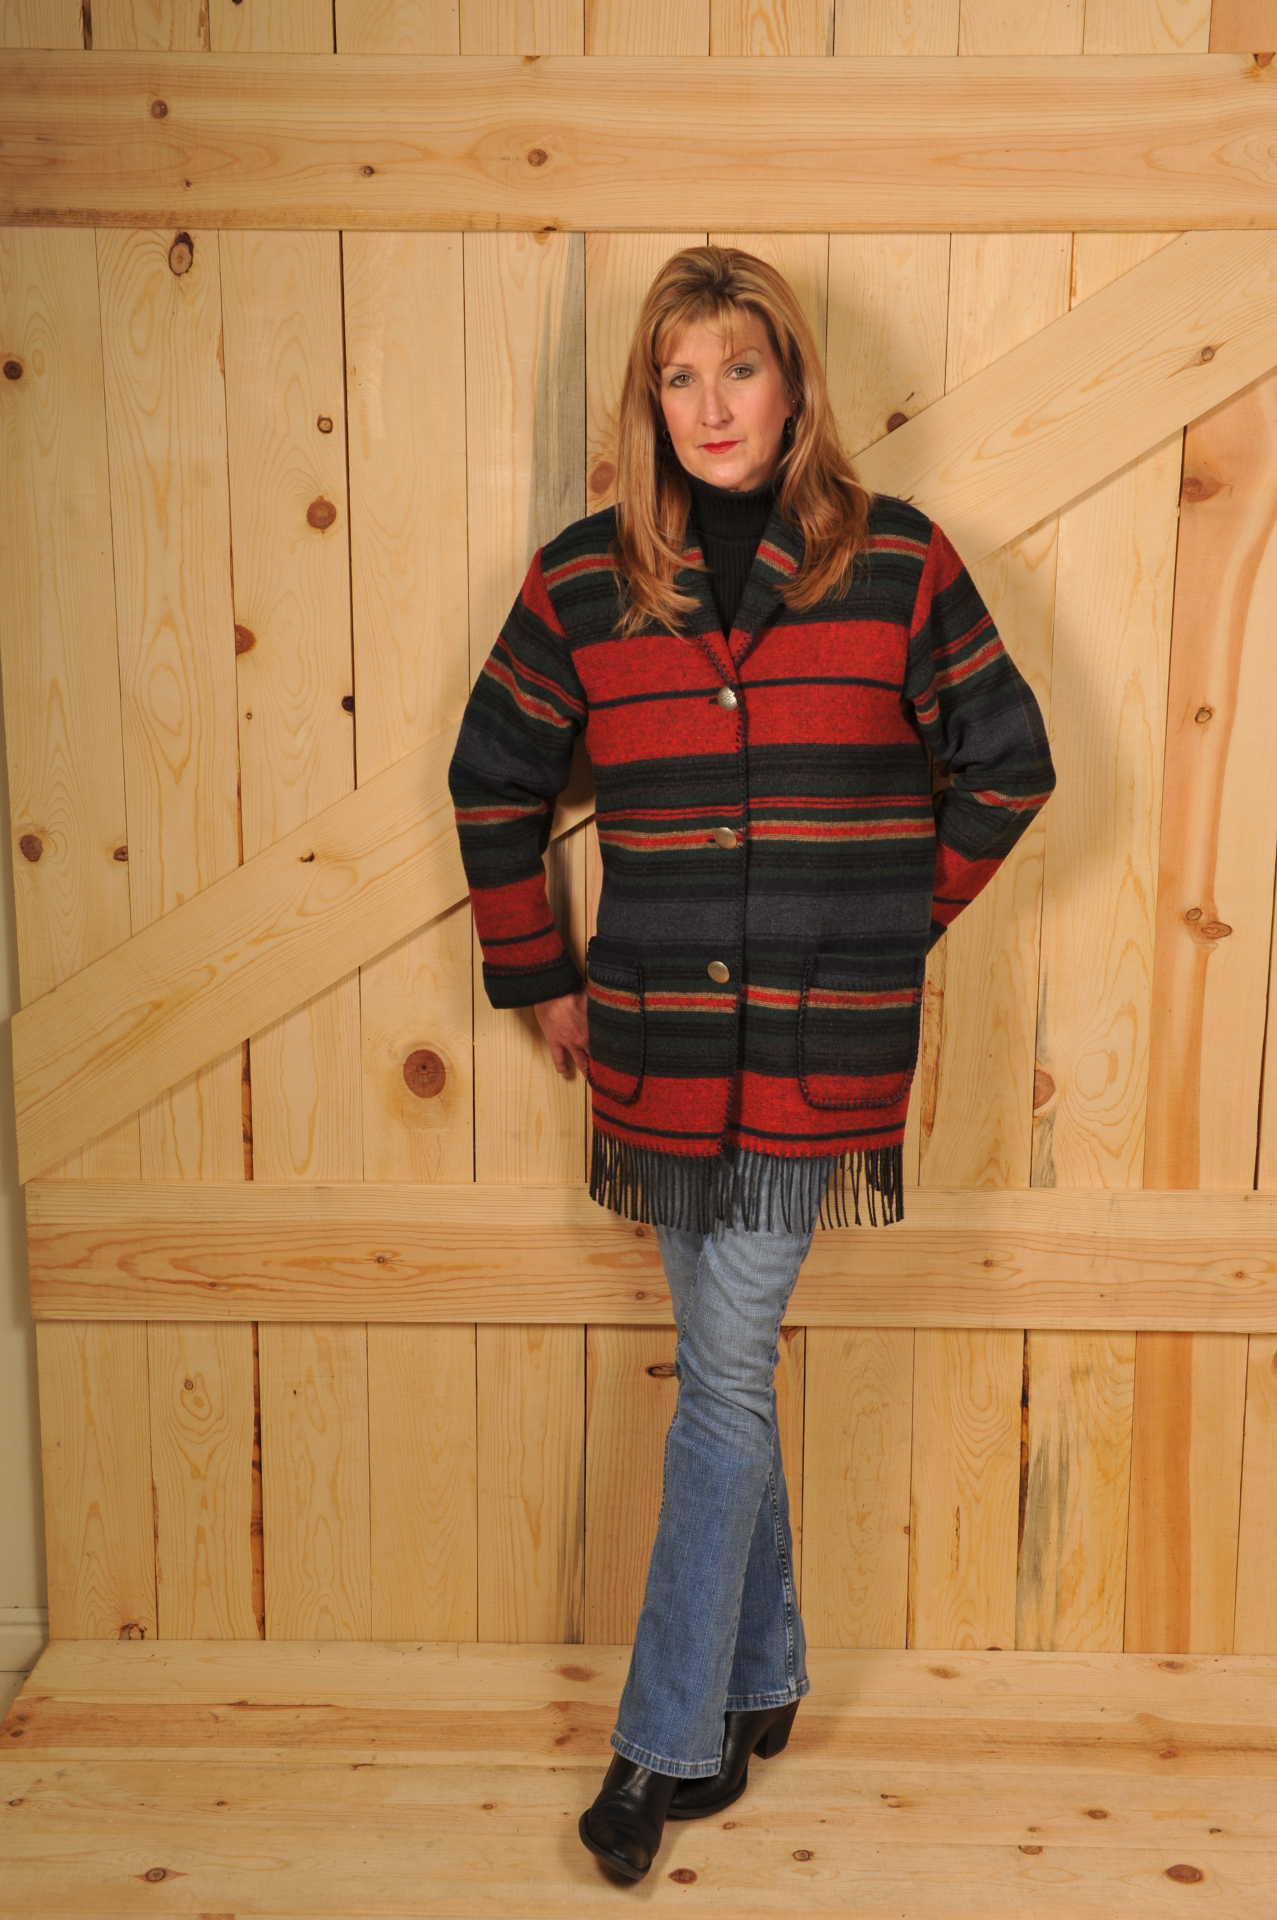 #875SNF NAVY SERAPE FRINGE CAR COAT - $179.95       OUTLET SALE $99 - SMALL ONLY